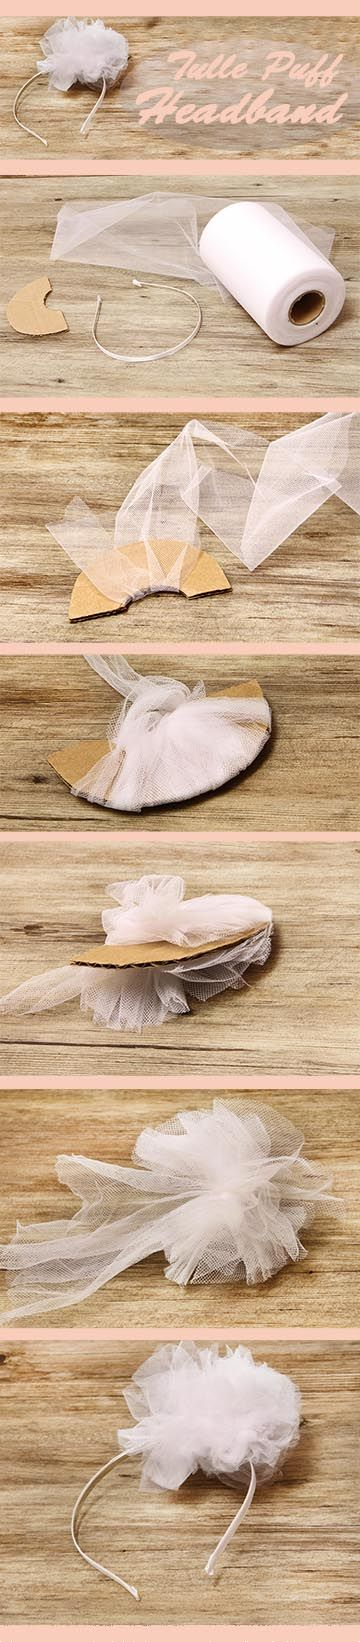 How to make a DIY tulle puff headband - an easy to follow tutorial, perfect to make a flower girl or first communion headband, or even just a fairy headband for playing dress up!